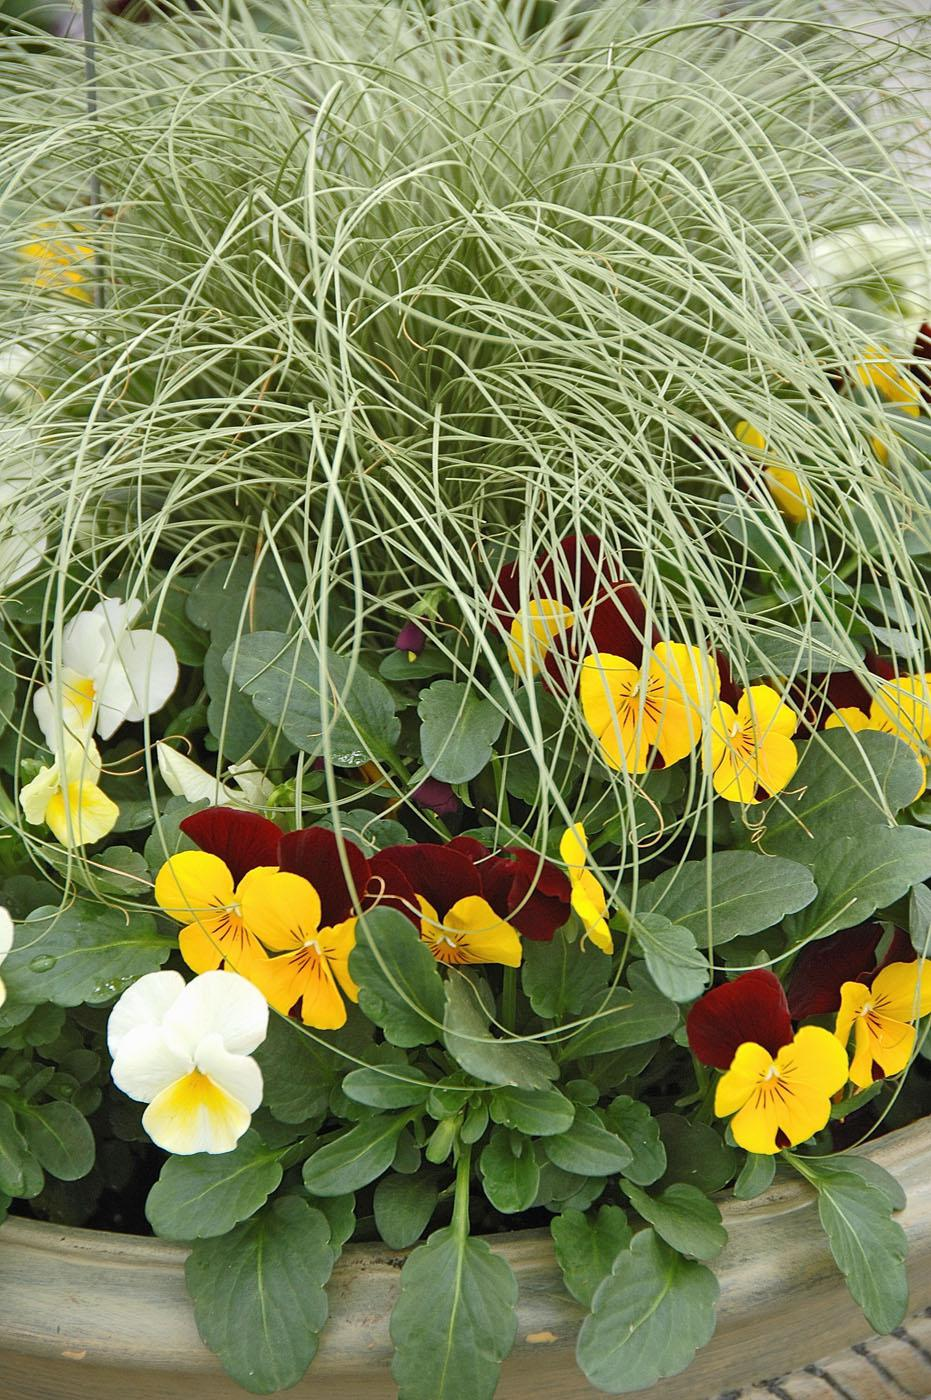 Penny violas and ornamental grasses make great cool-season mixed containers. Here a few Penny colors are mixed with the long stems of the carex.